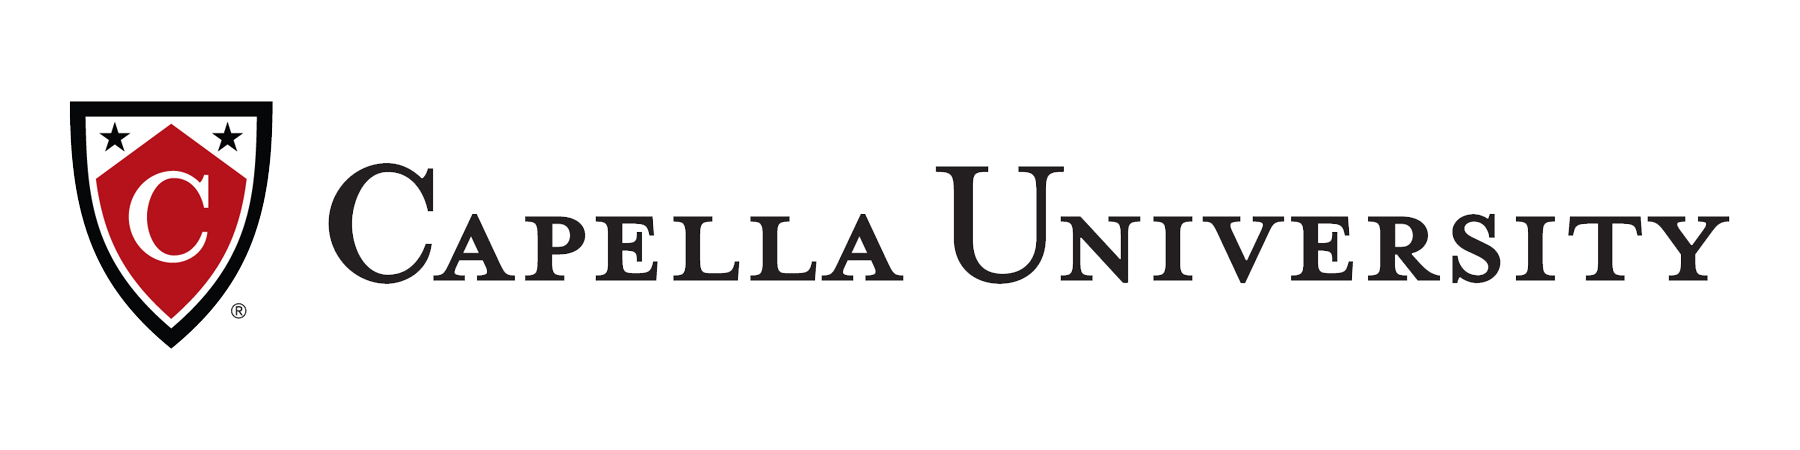 capella-university 2.png